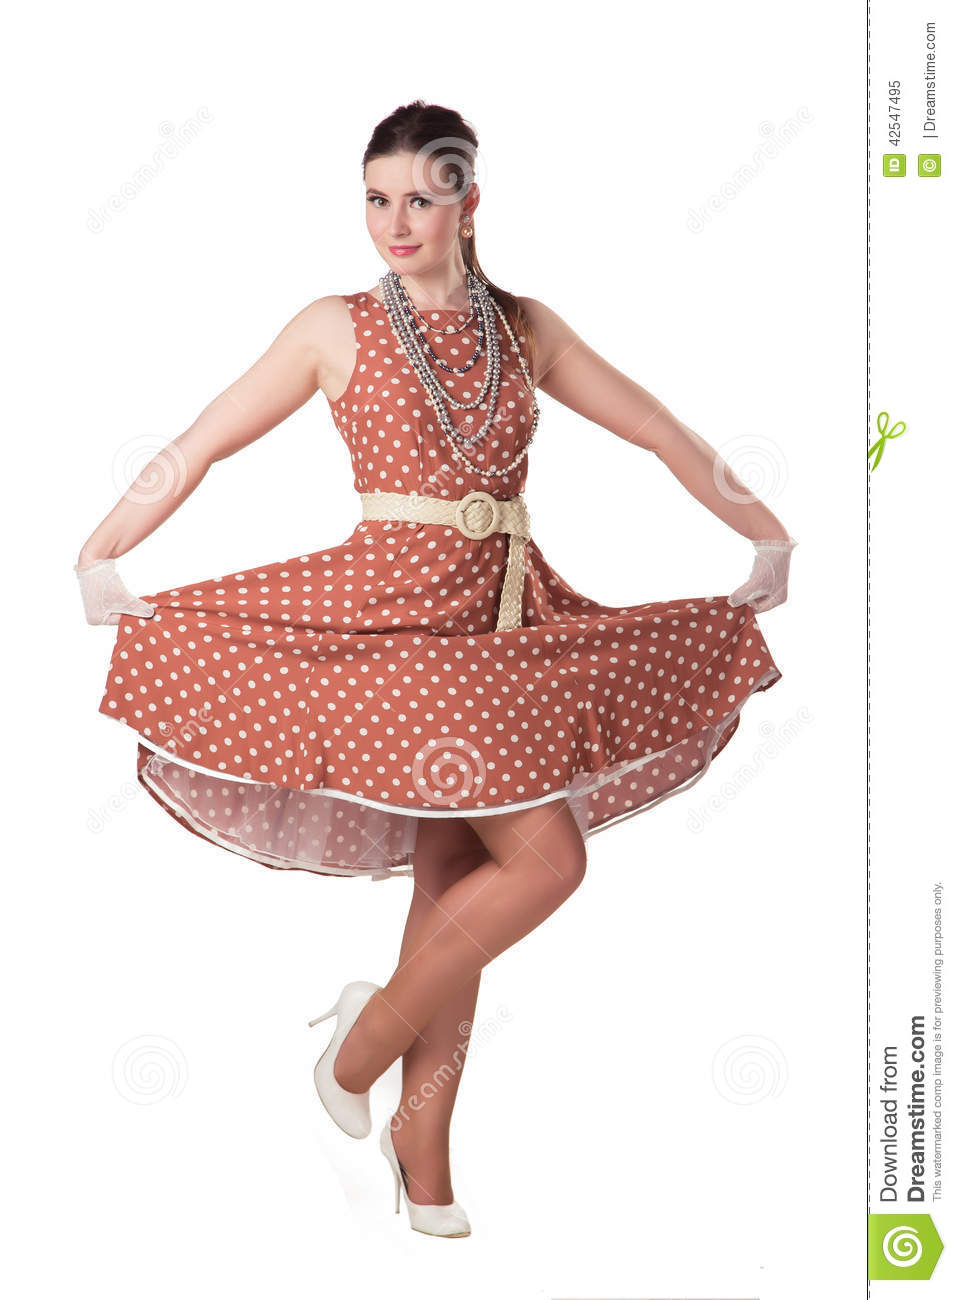 Girl In Polka-dot Dress Stock Photo - Image: 42547495